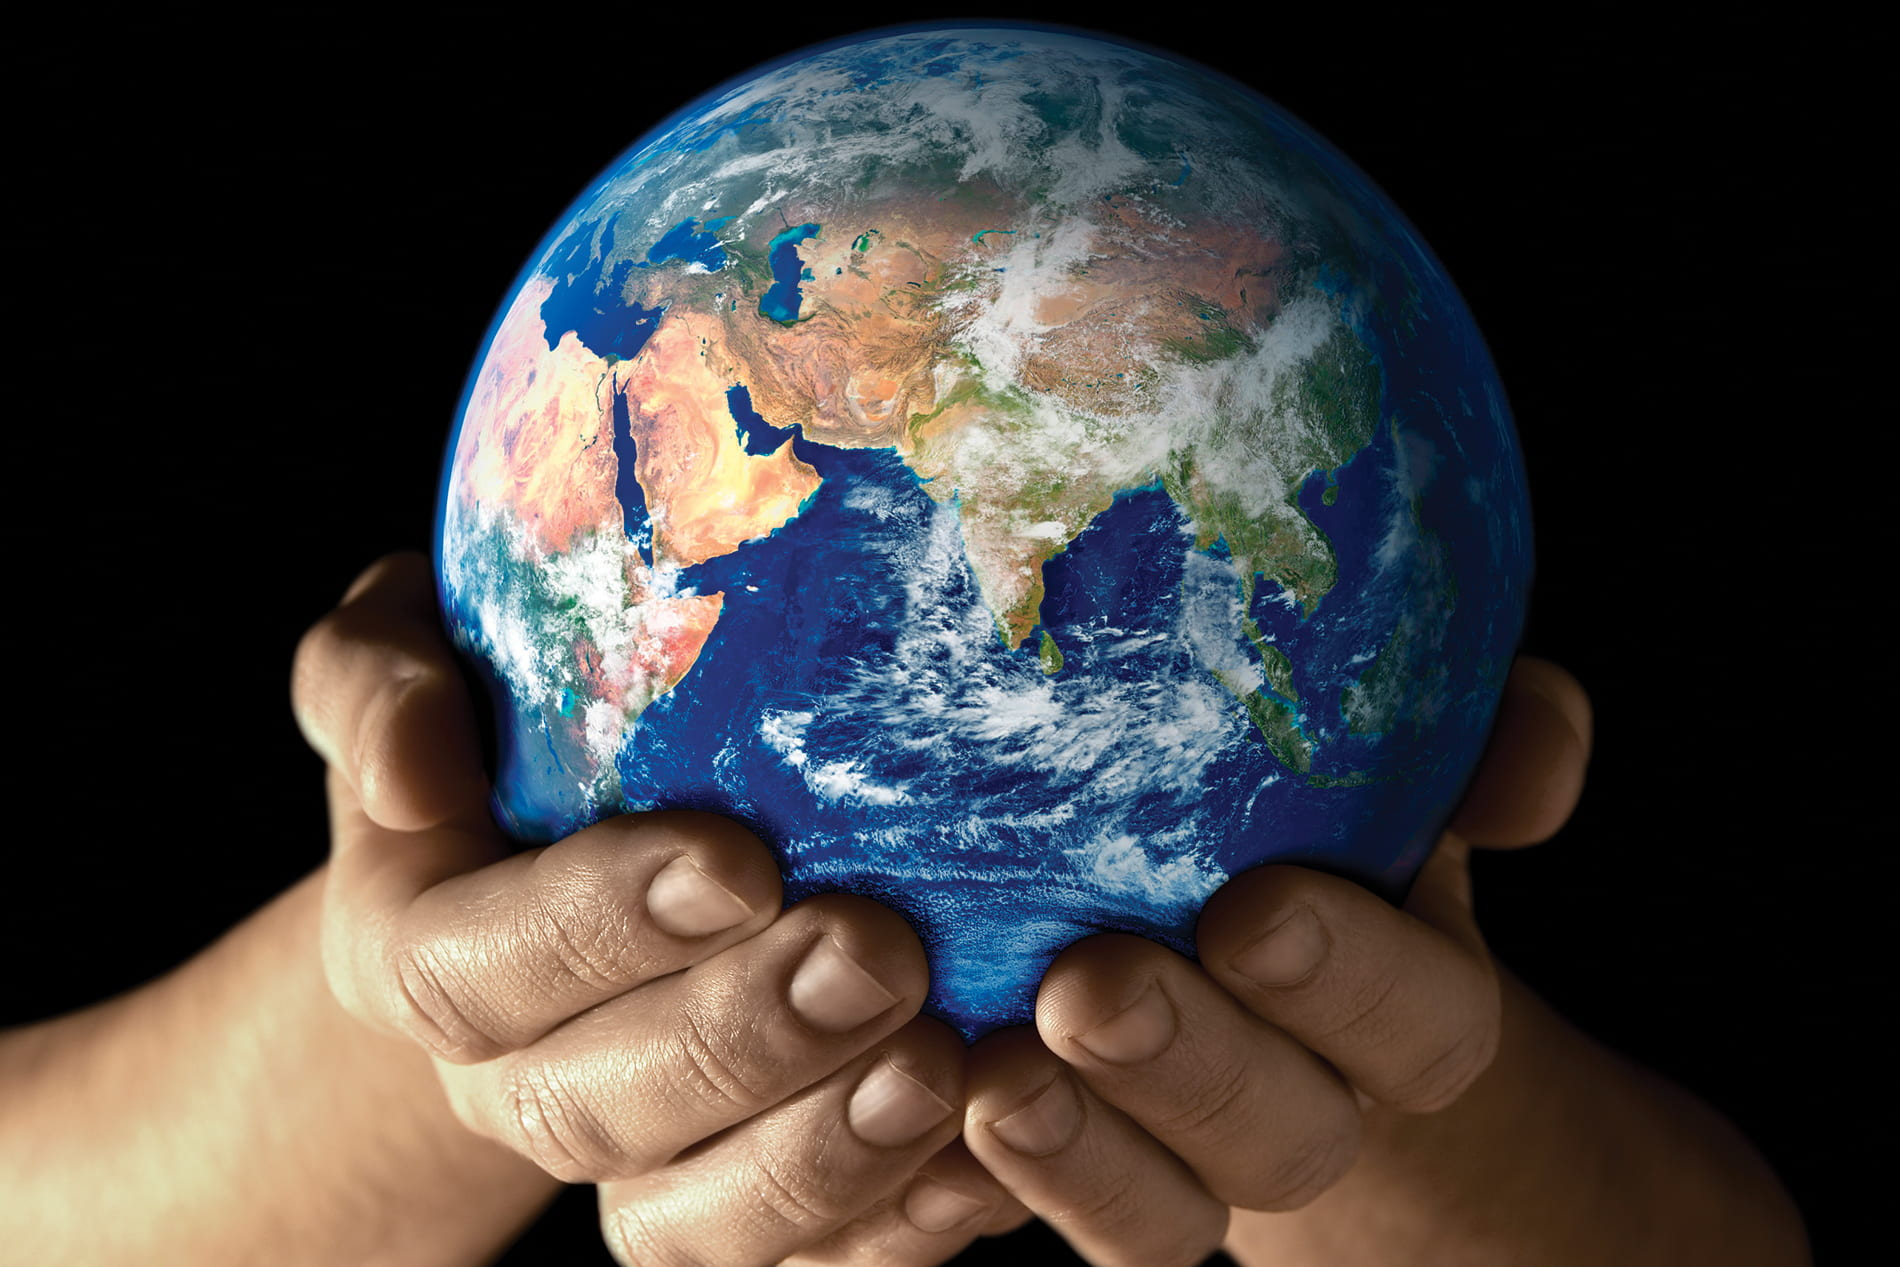 hands cradling the planet earth